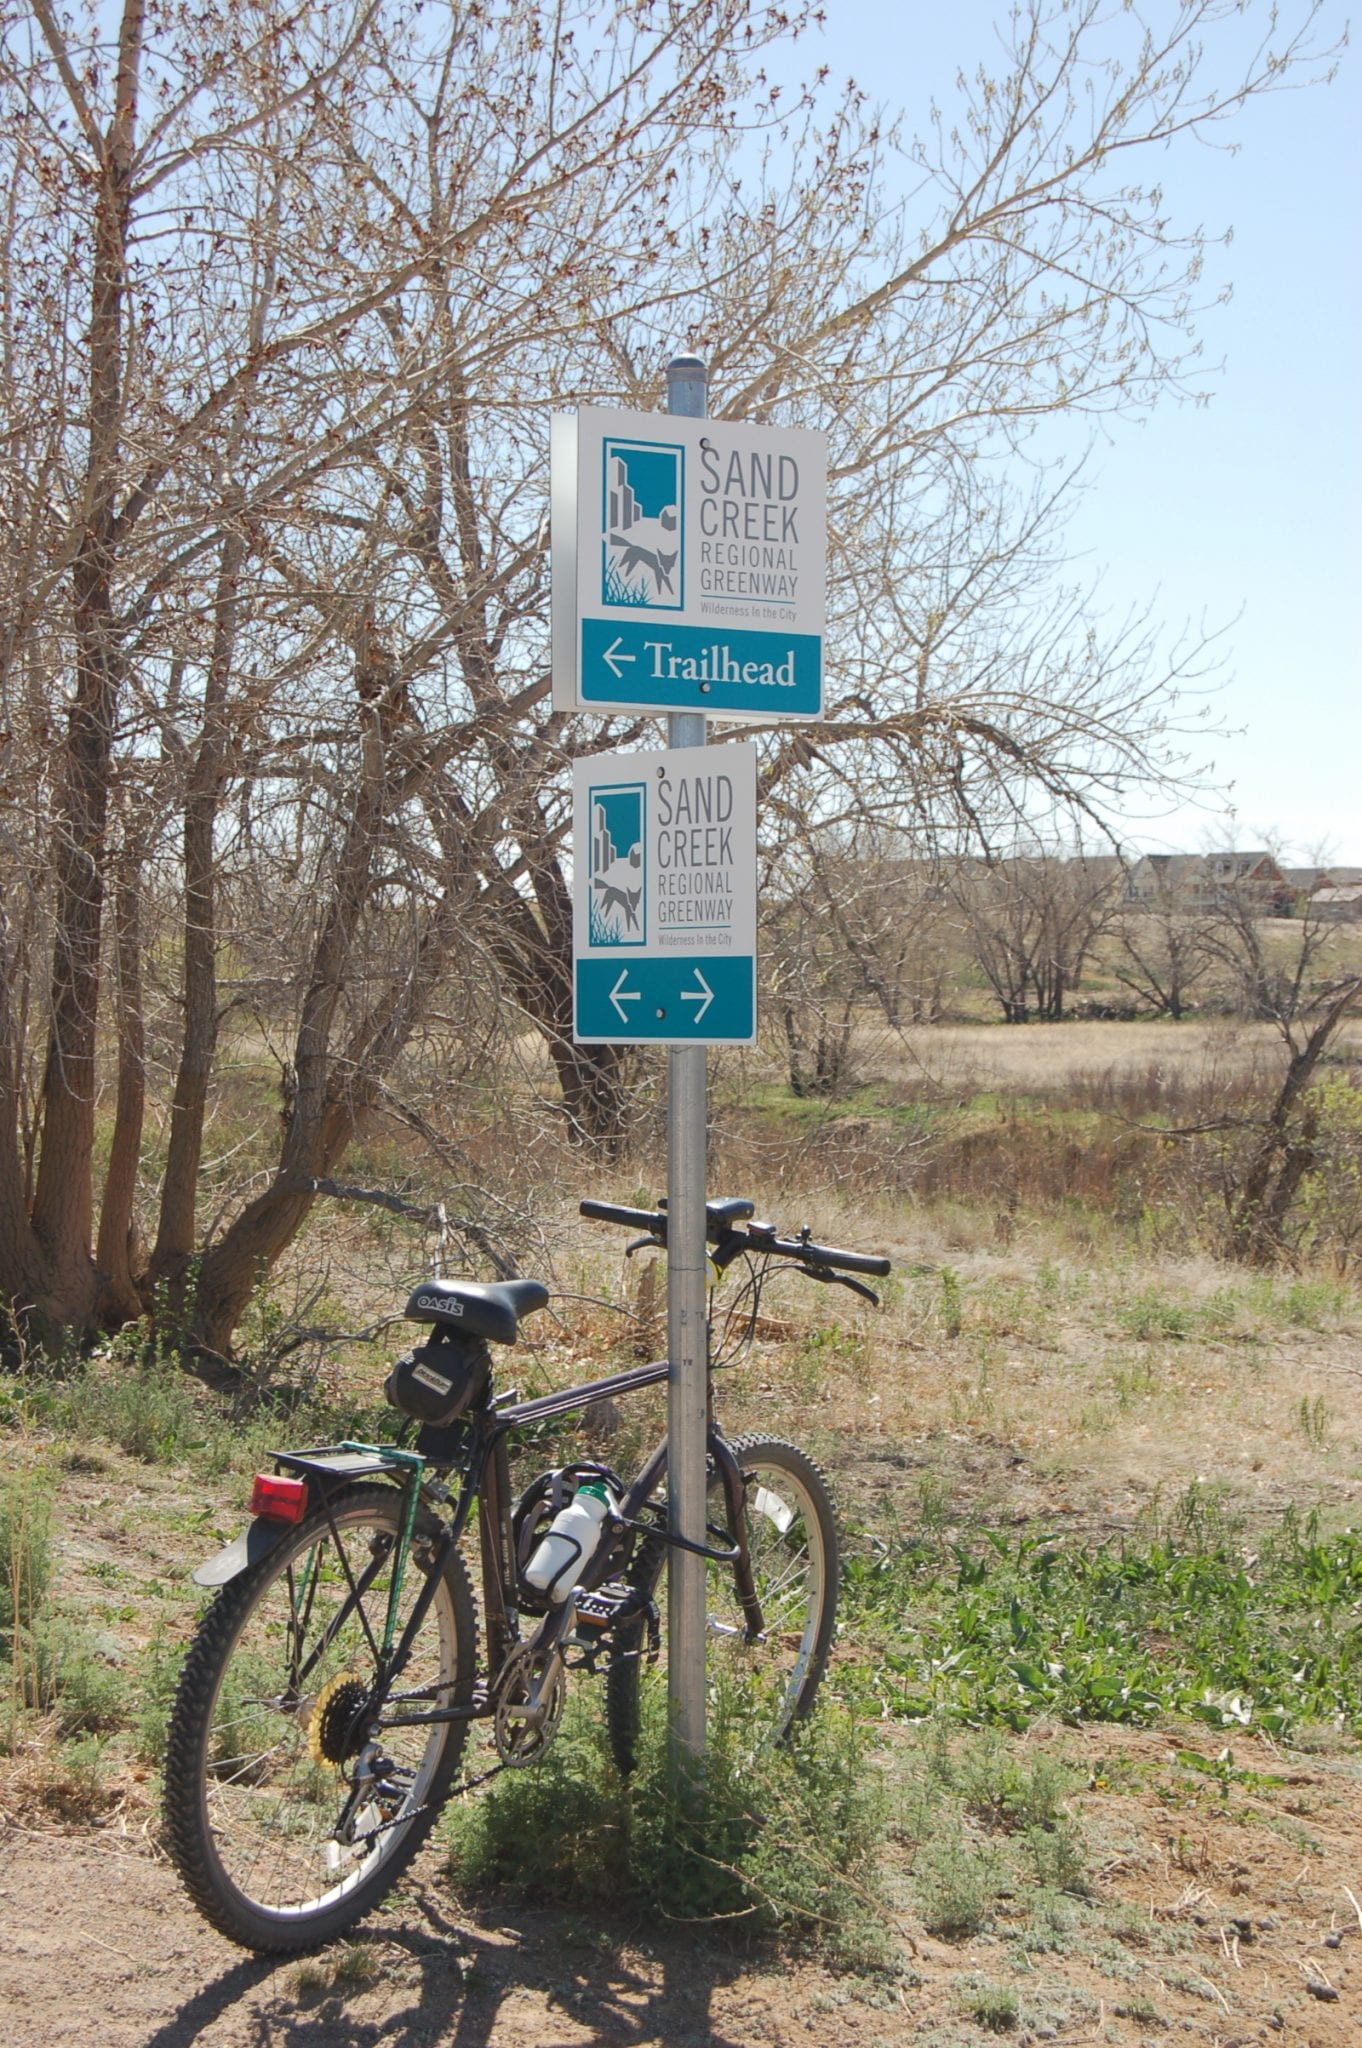 Sand Creek Regional Greenway Trail Map Colorado